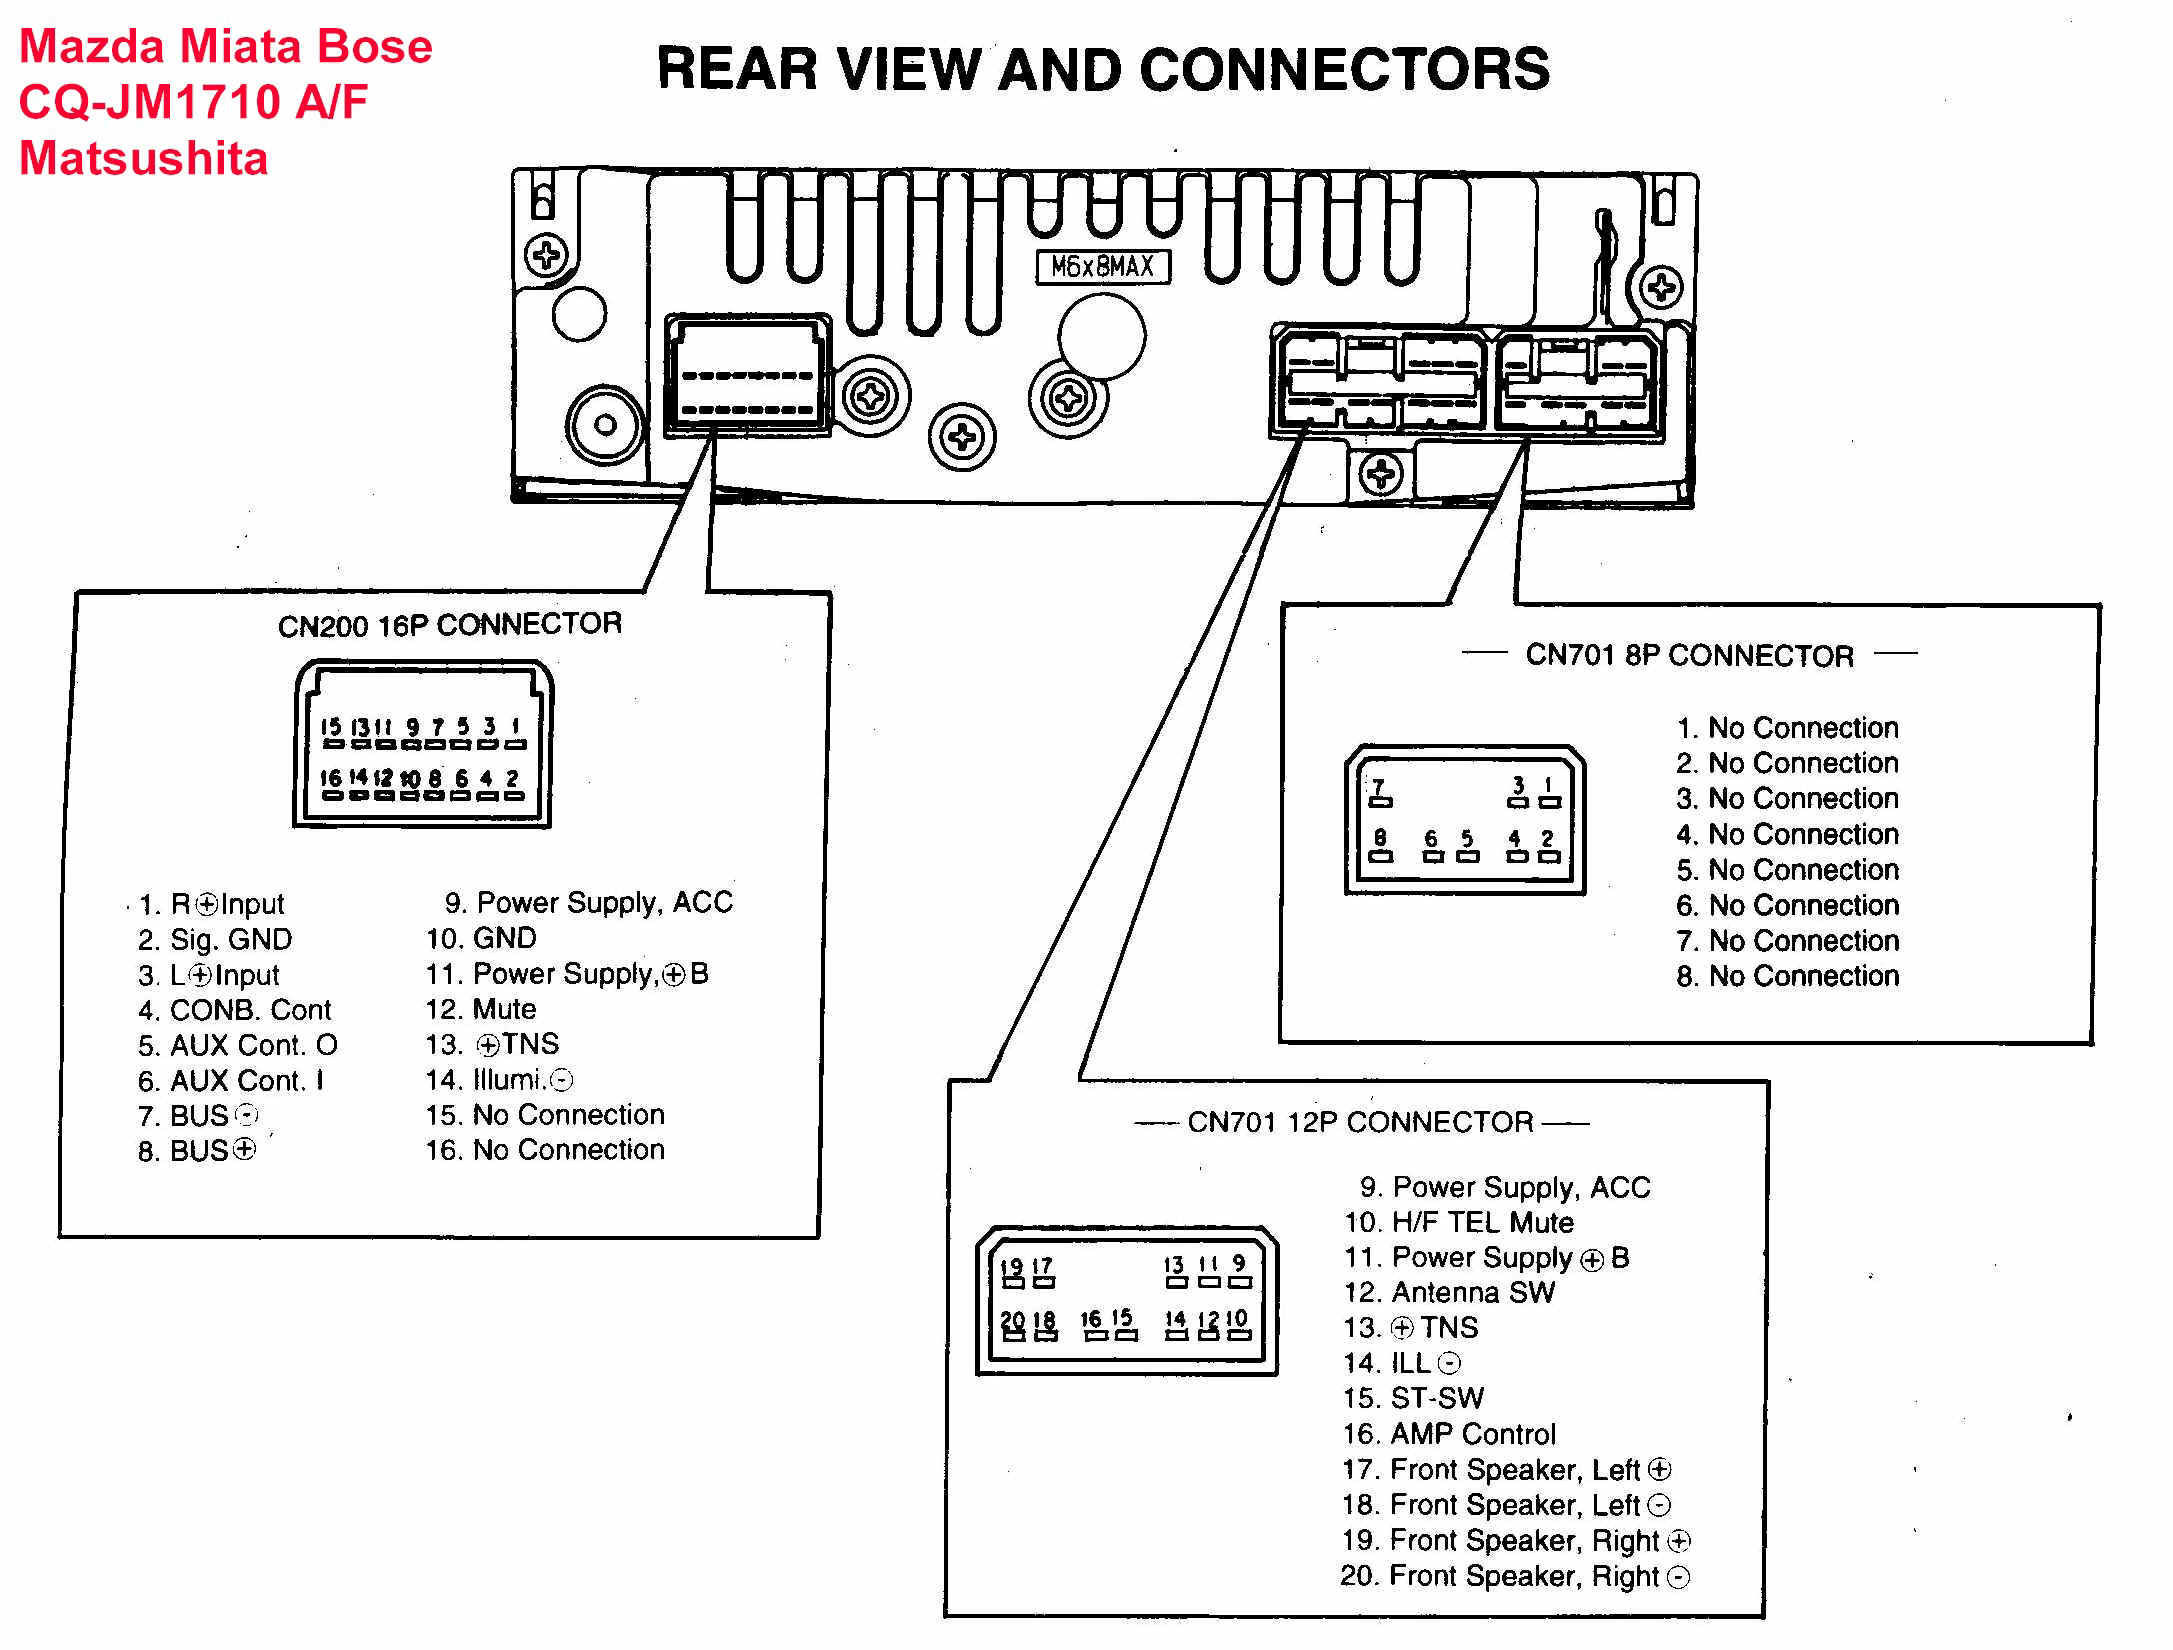 WireharnessMazda022001 Harley Ecm Wiring Diagrams Pdf on